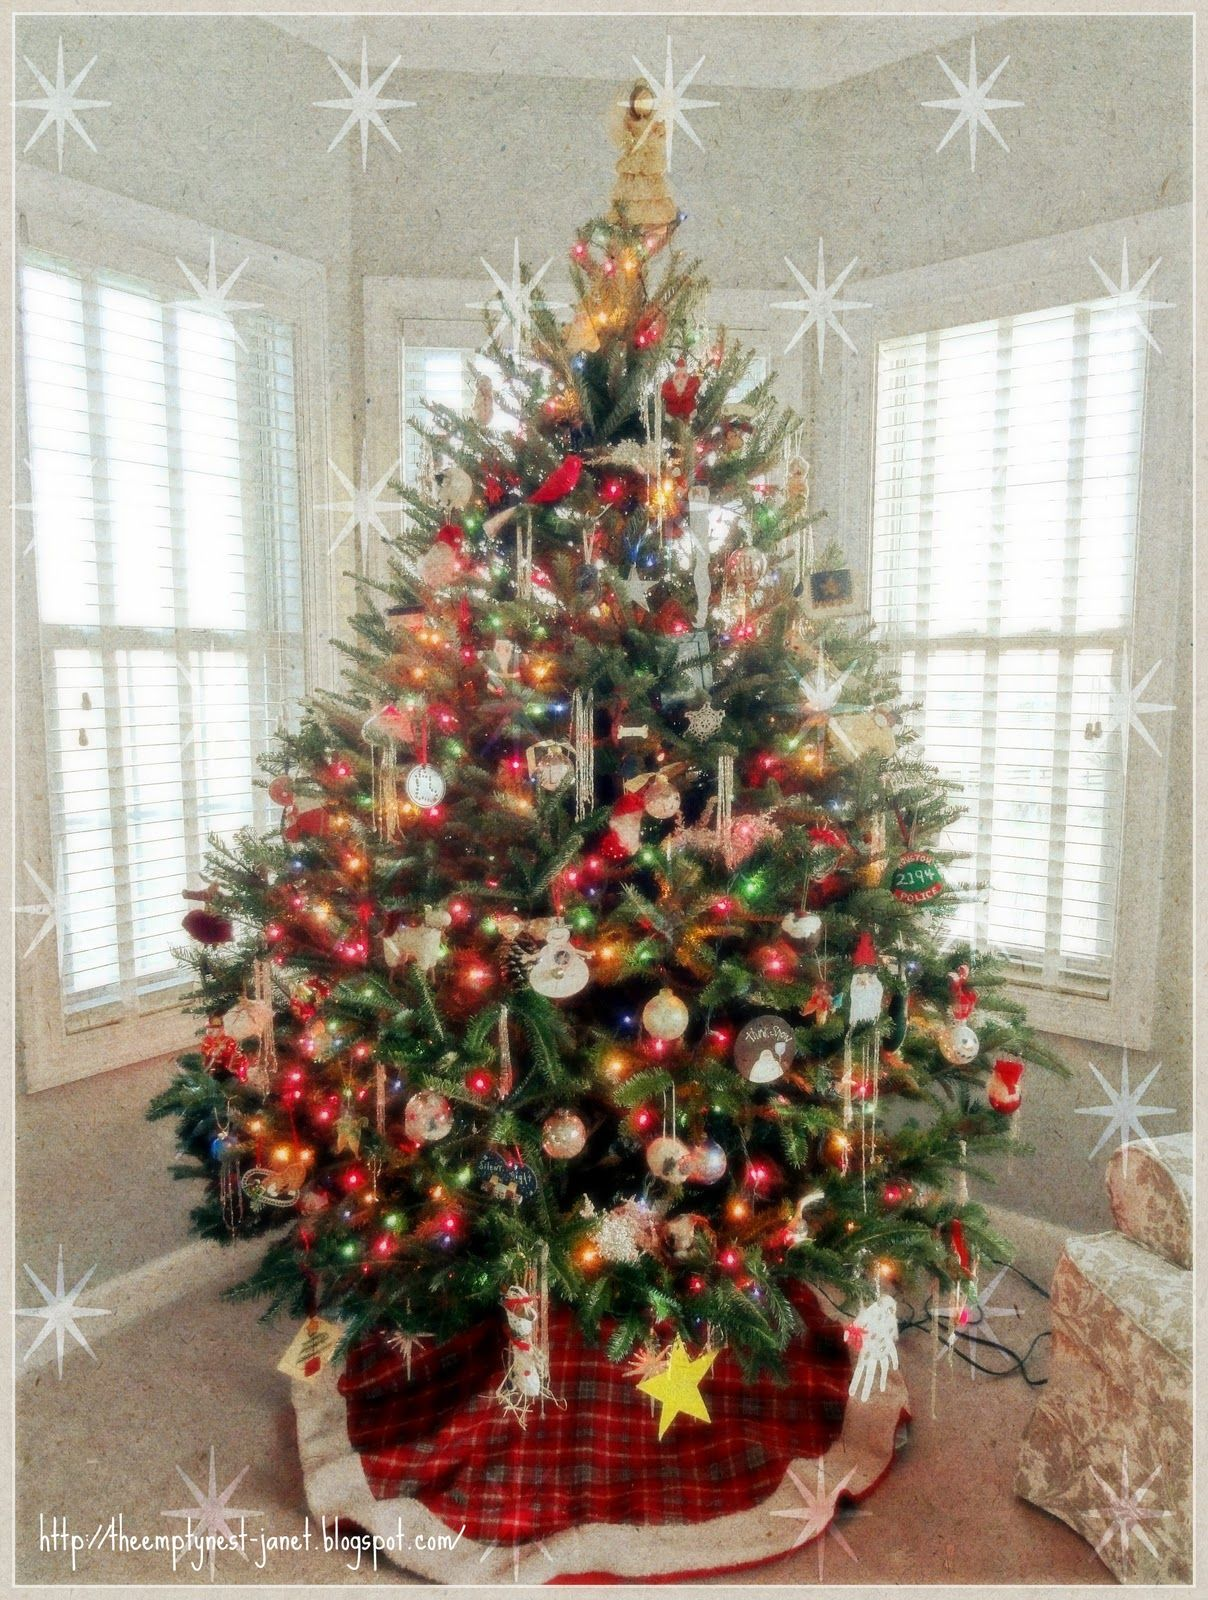 Old-Fashioned Christmas Decorations | The Empty Nest: Our ...